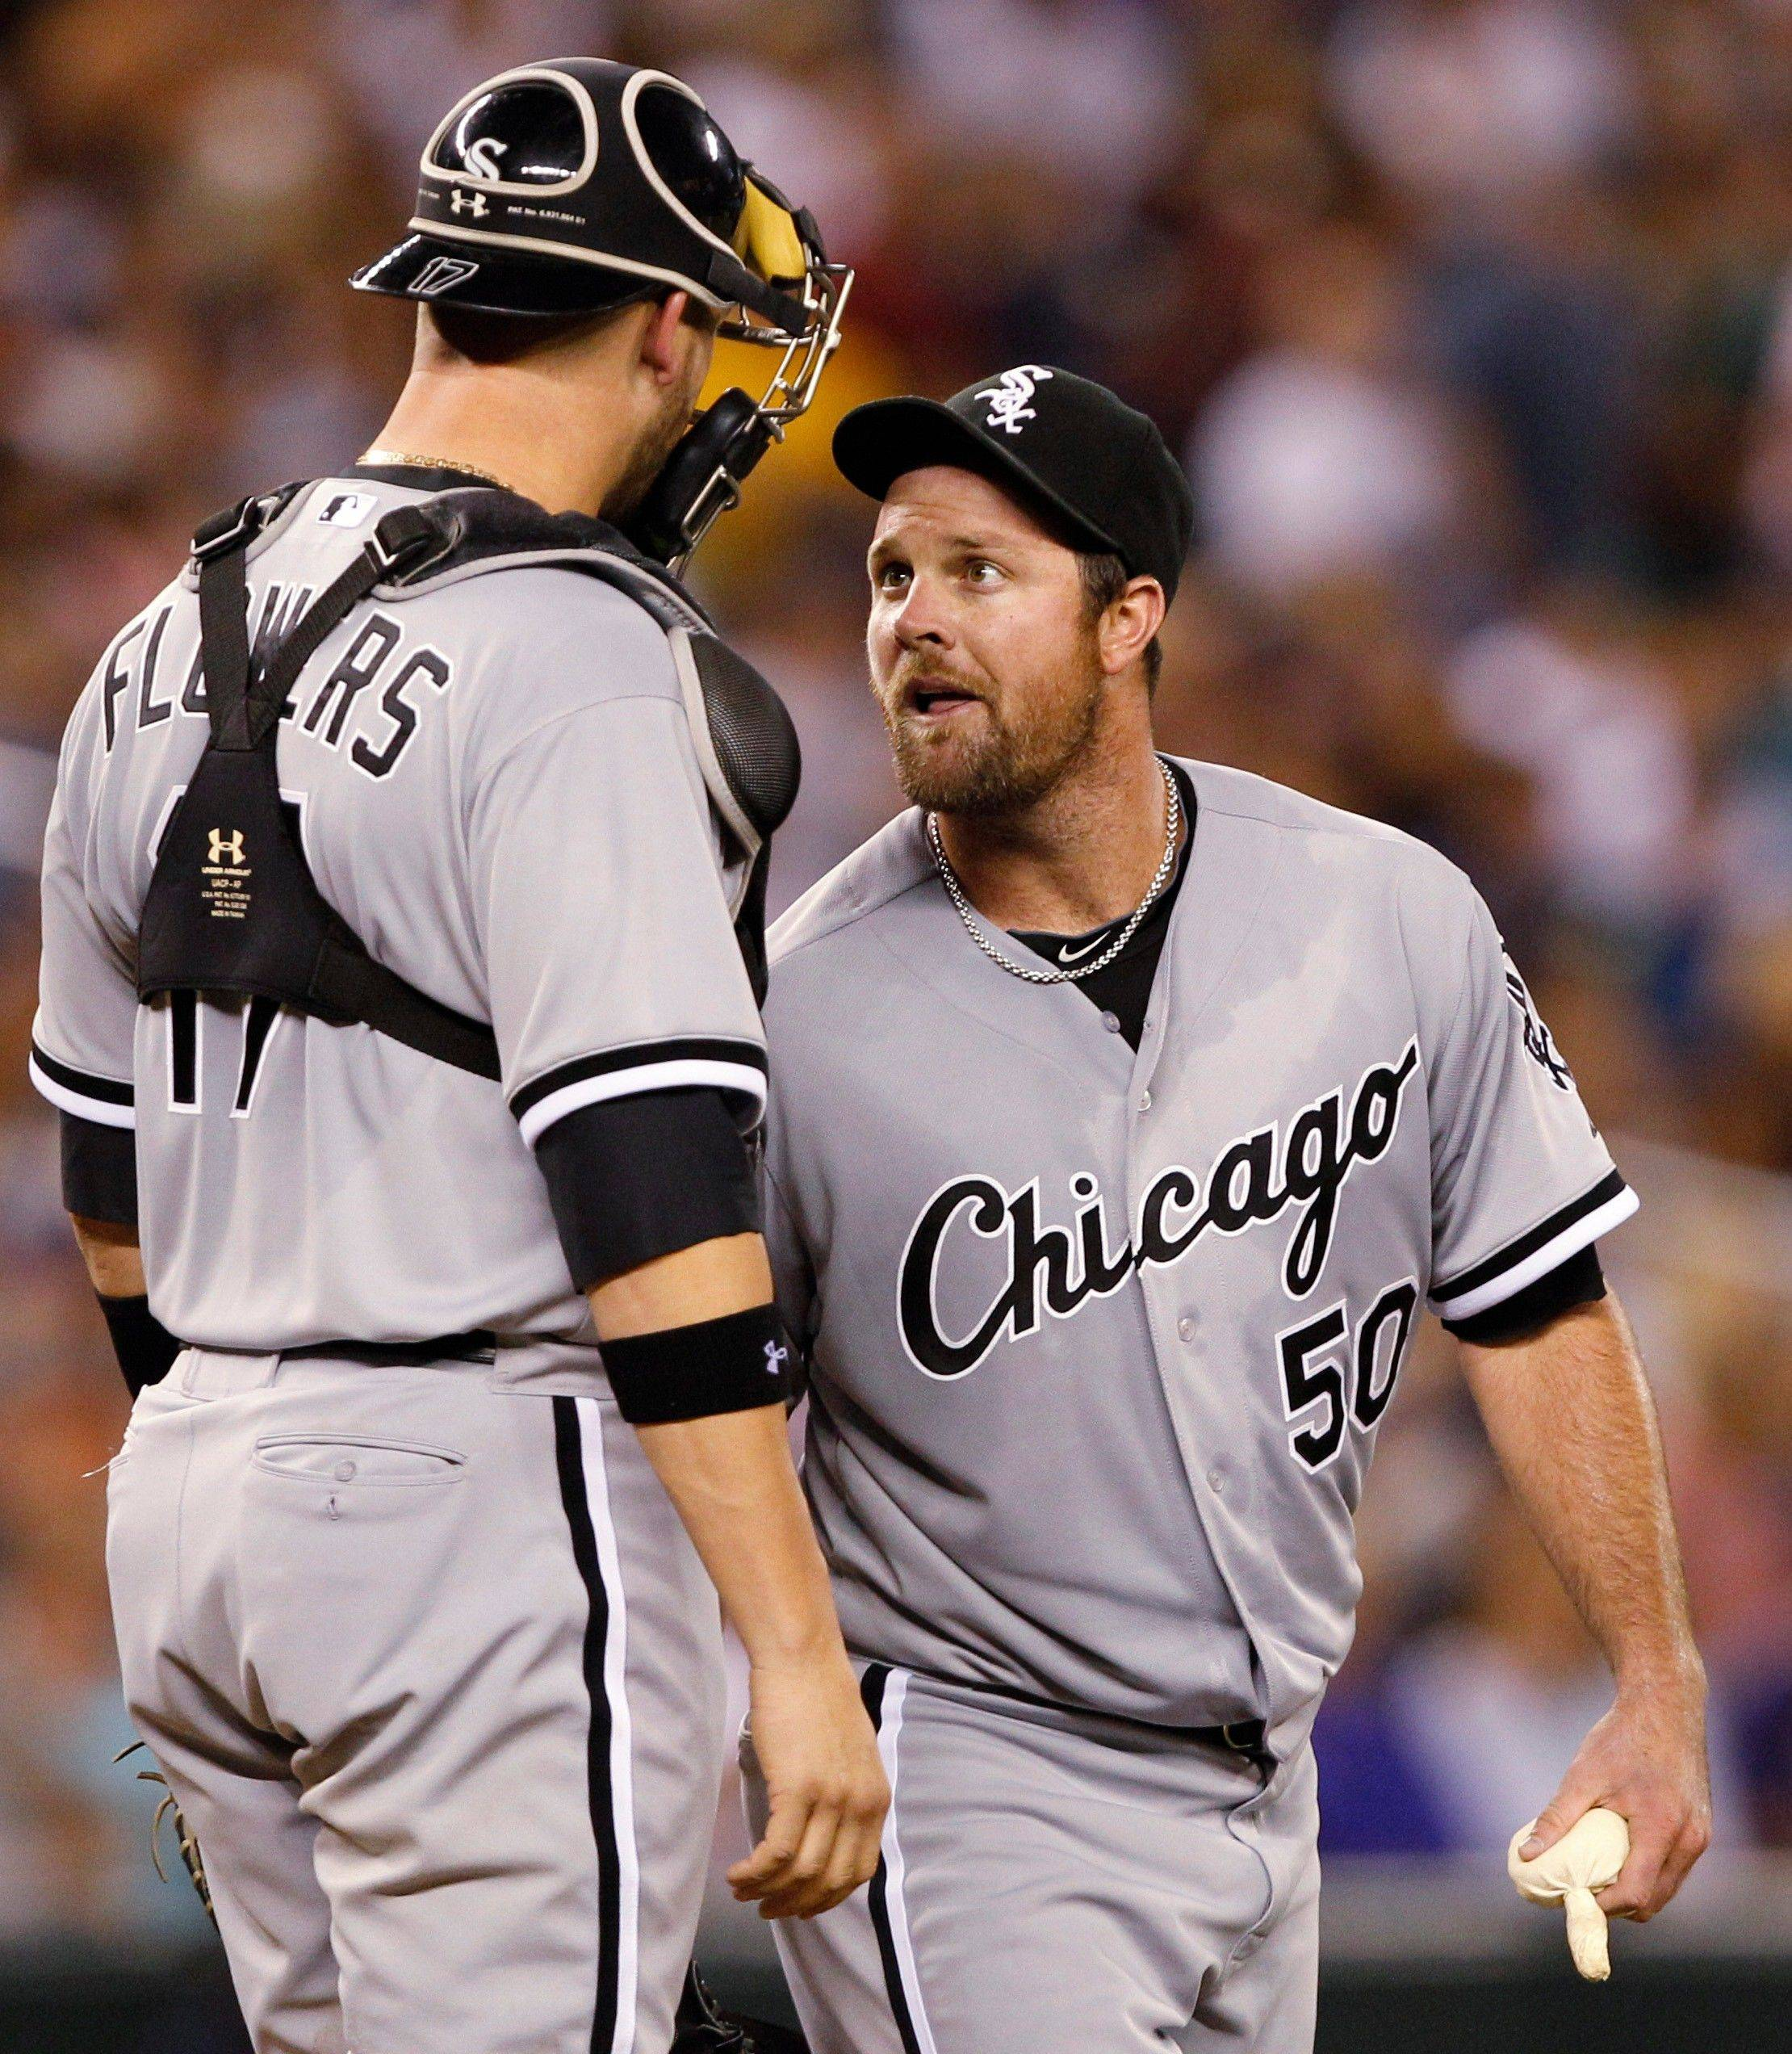 Chicago White Sox starting pitcher John Danks, right, talks with catcher Tyler Flowers after allowing a hit by the Seattle Mariners in the sixth inning of a baseball game on Saturday, Aug. 27, 2011, in Seattle. (AP Photo/Elaine Thompson)